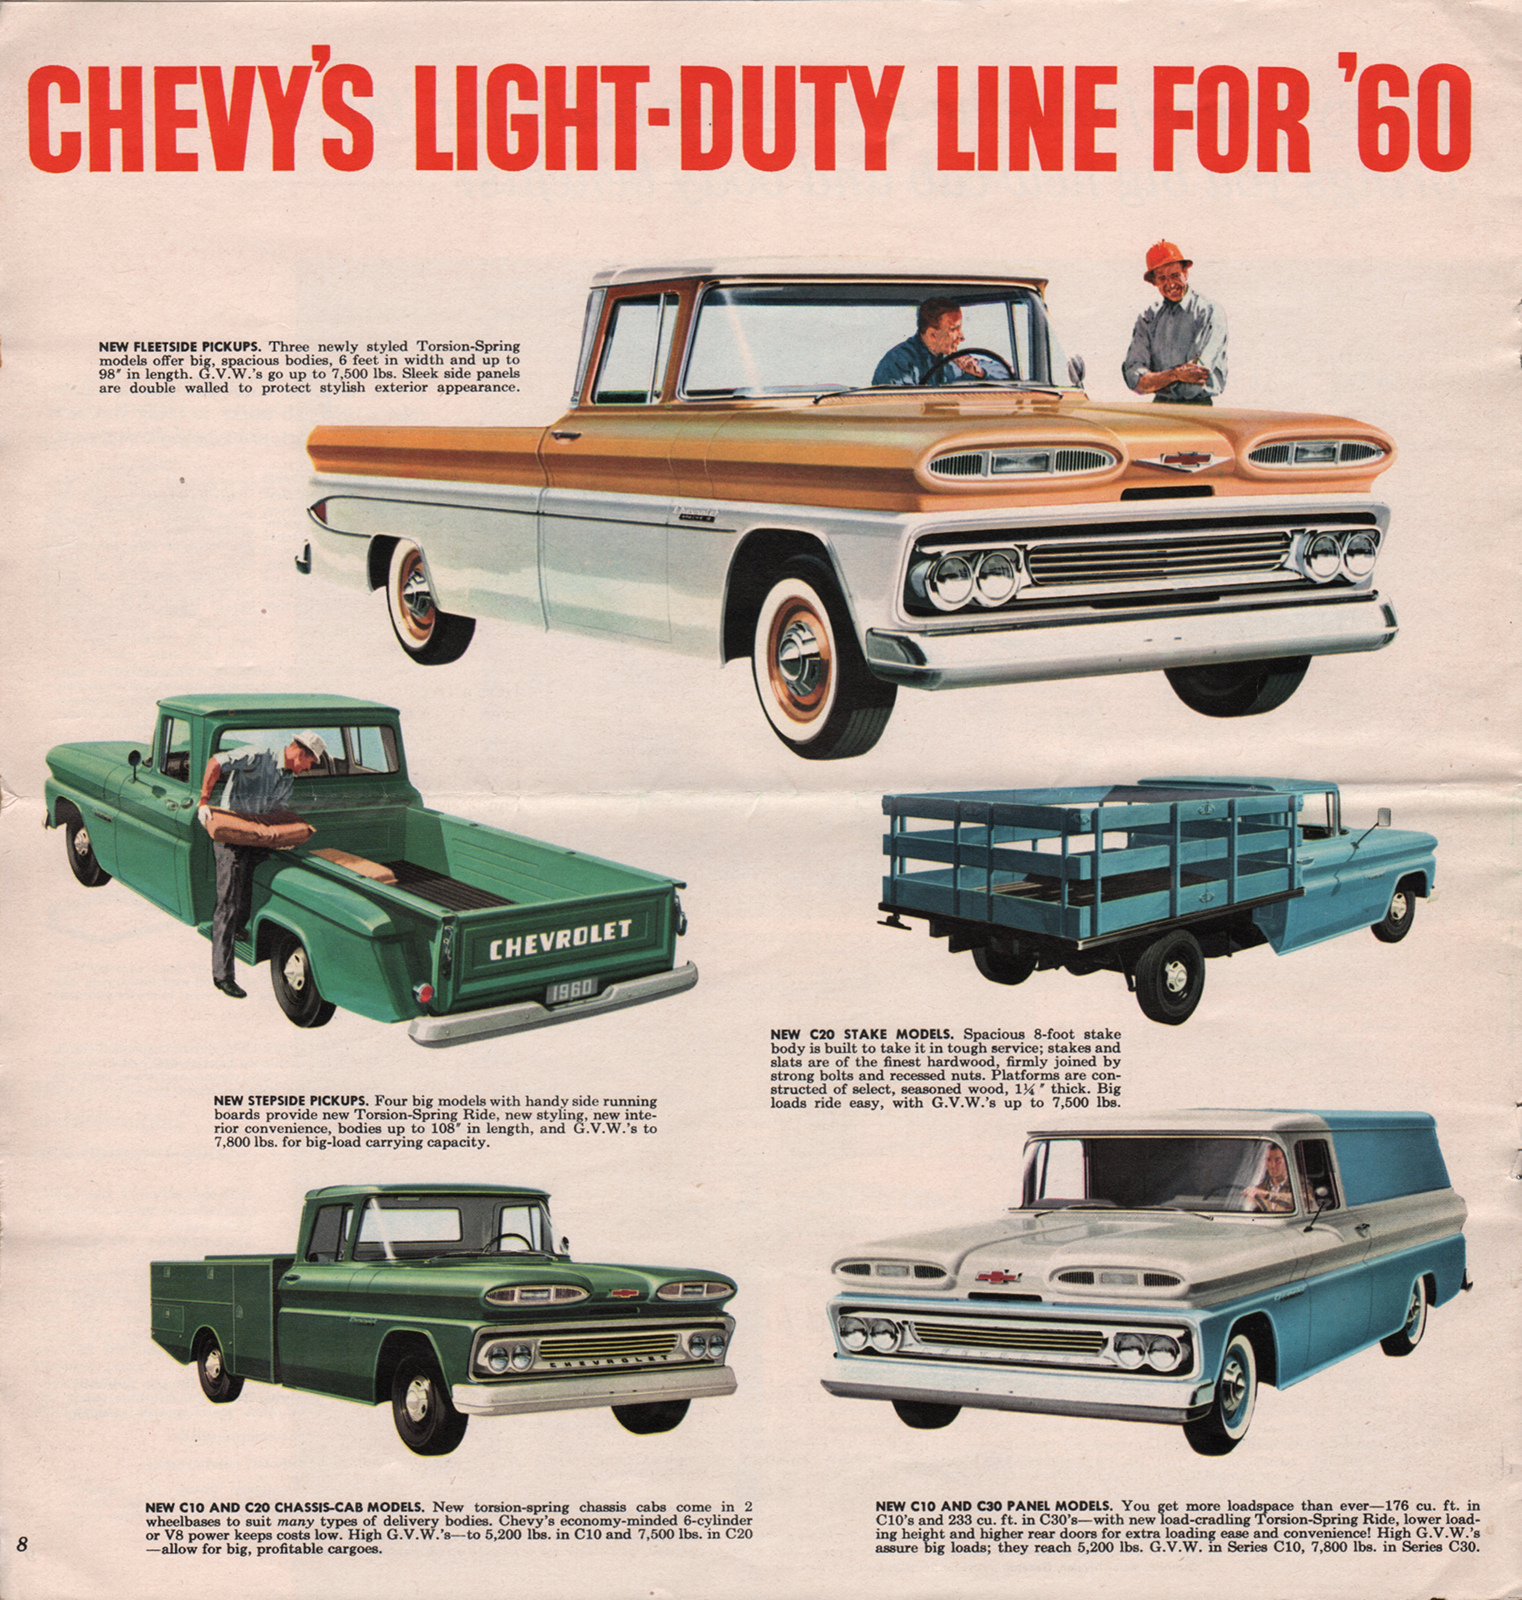 1975 Chevy Pickup Fuse Panel Circuit Wiring And Diagram Hub 85 C30 Box Gm 1960 Truck Sales Brochure 1970 1985